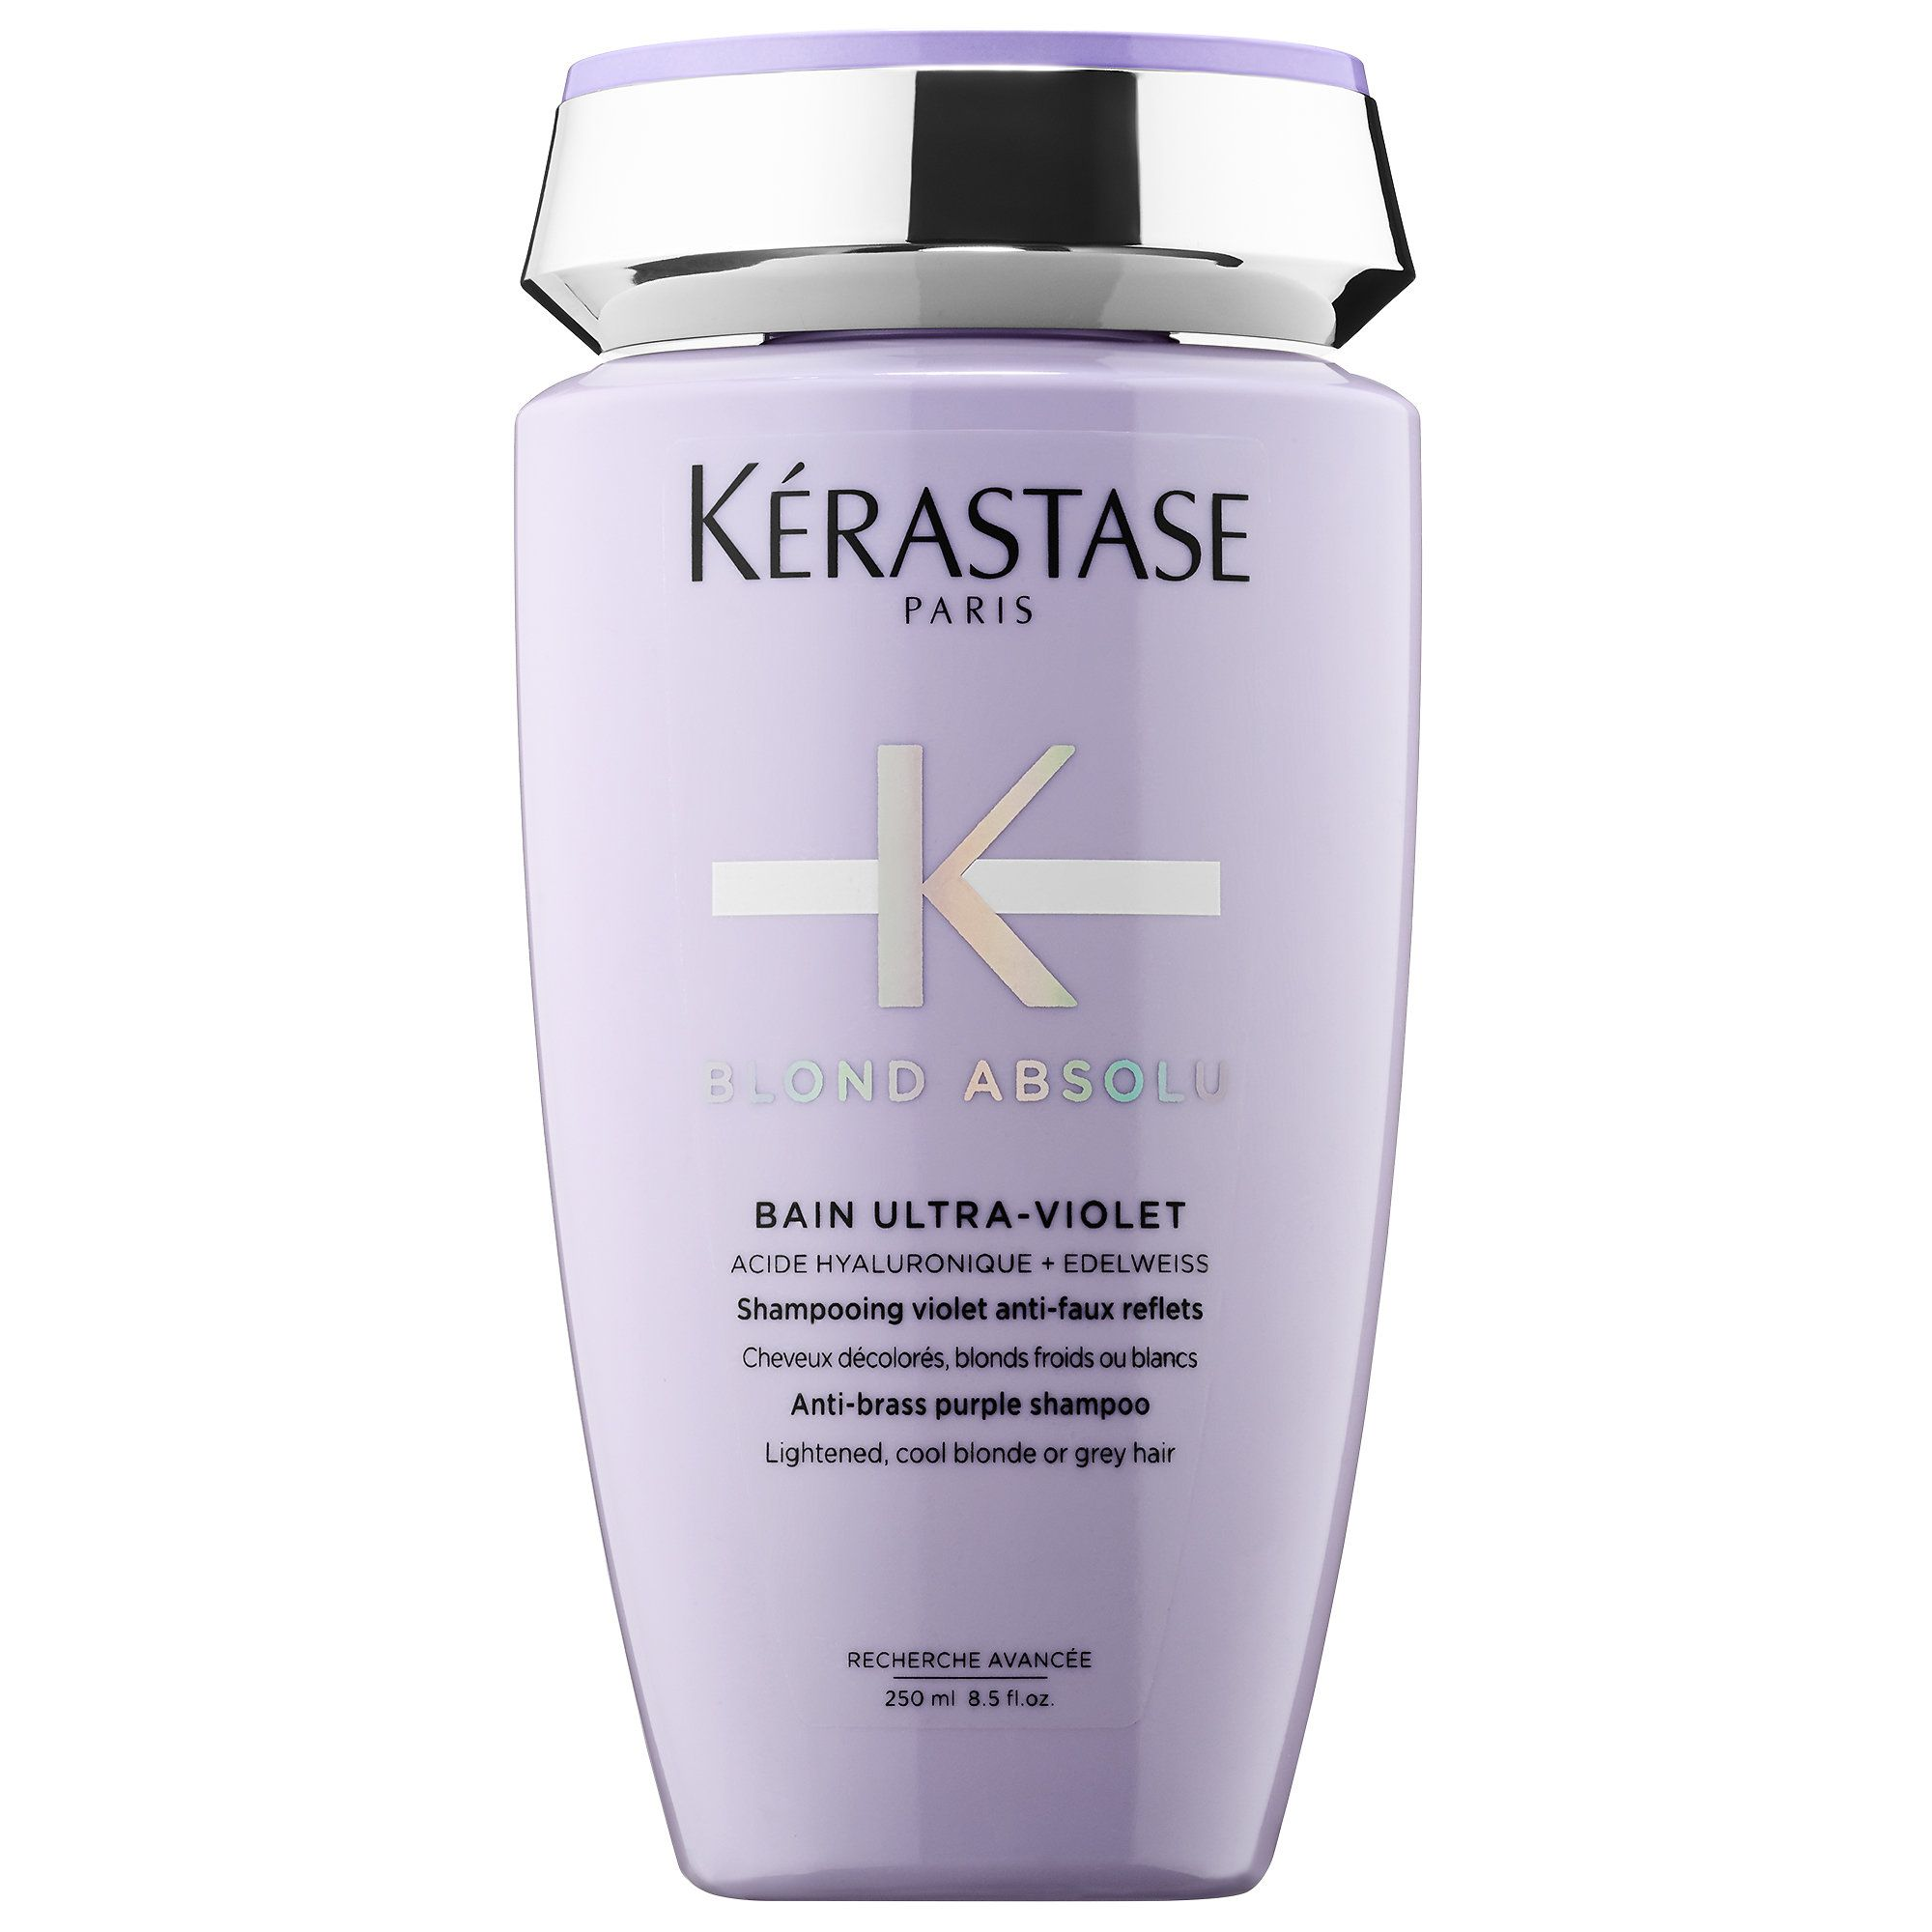 13 Best Shampoos For Gray Hair 2021 How To Keep Gray Hair Shiny